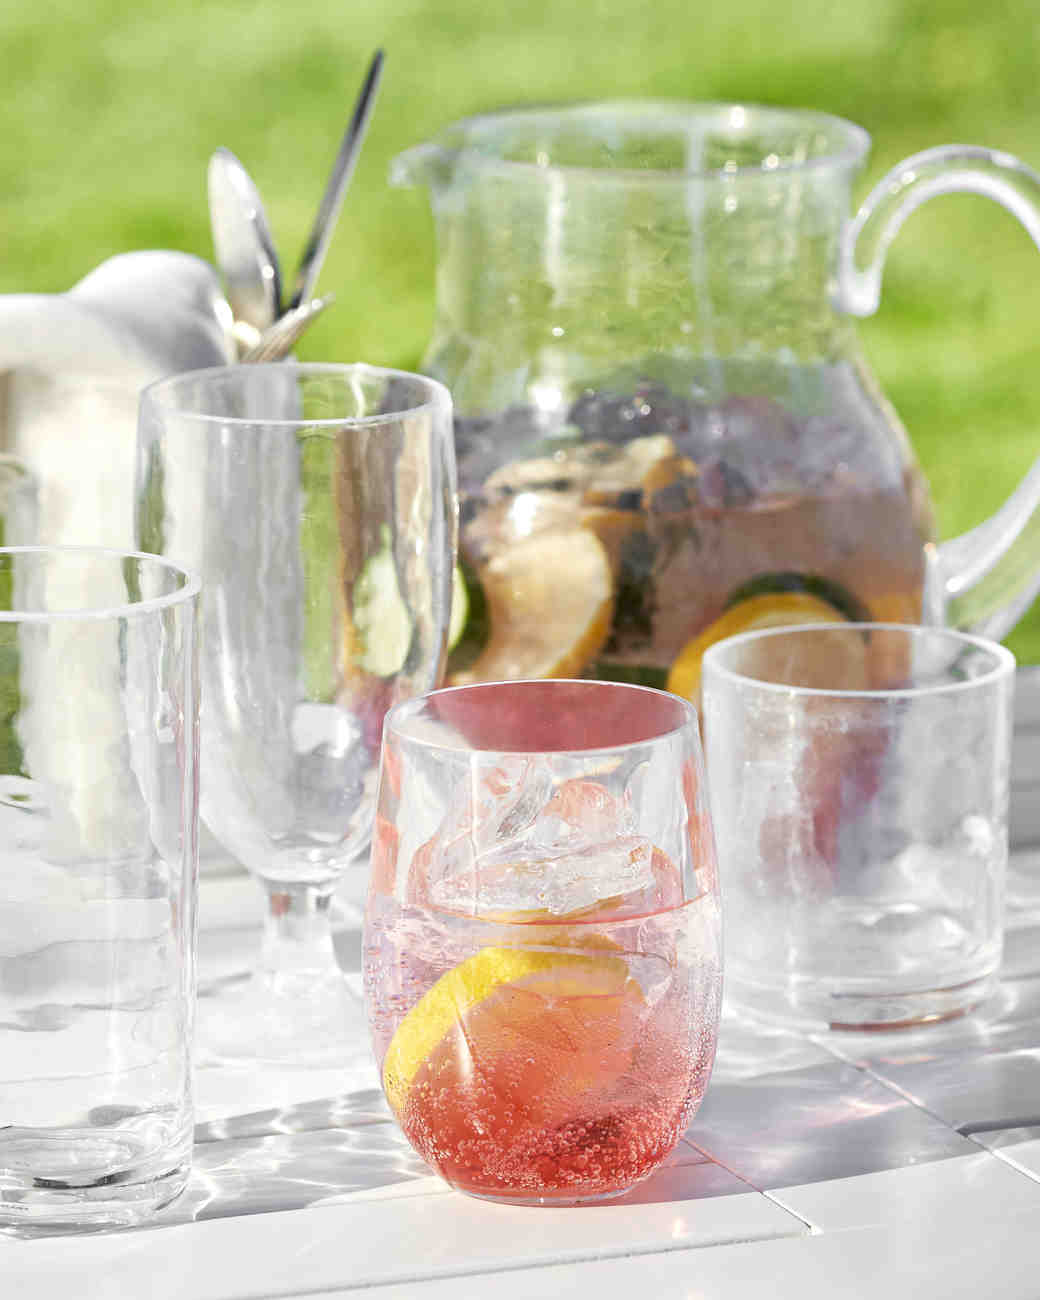 Best Place To Register For Wedding: 14 Outdoor Entertaining Items To Add To Your Wedding